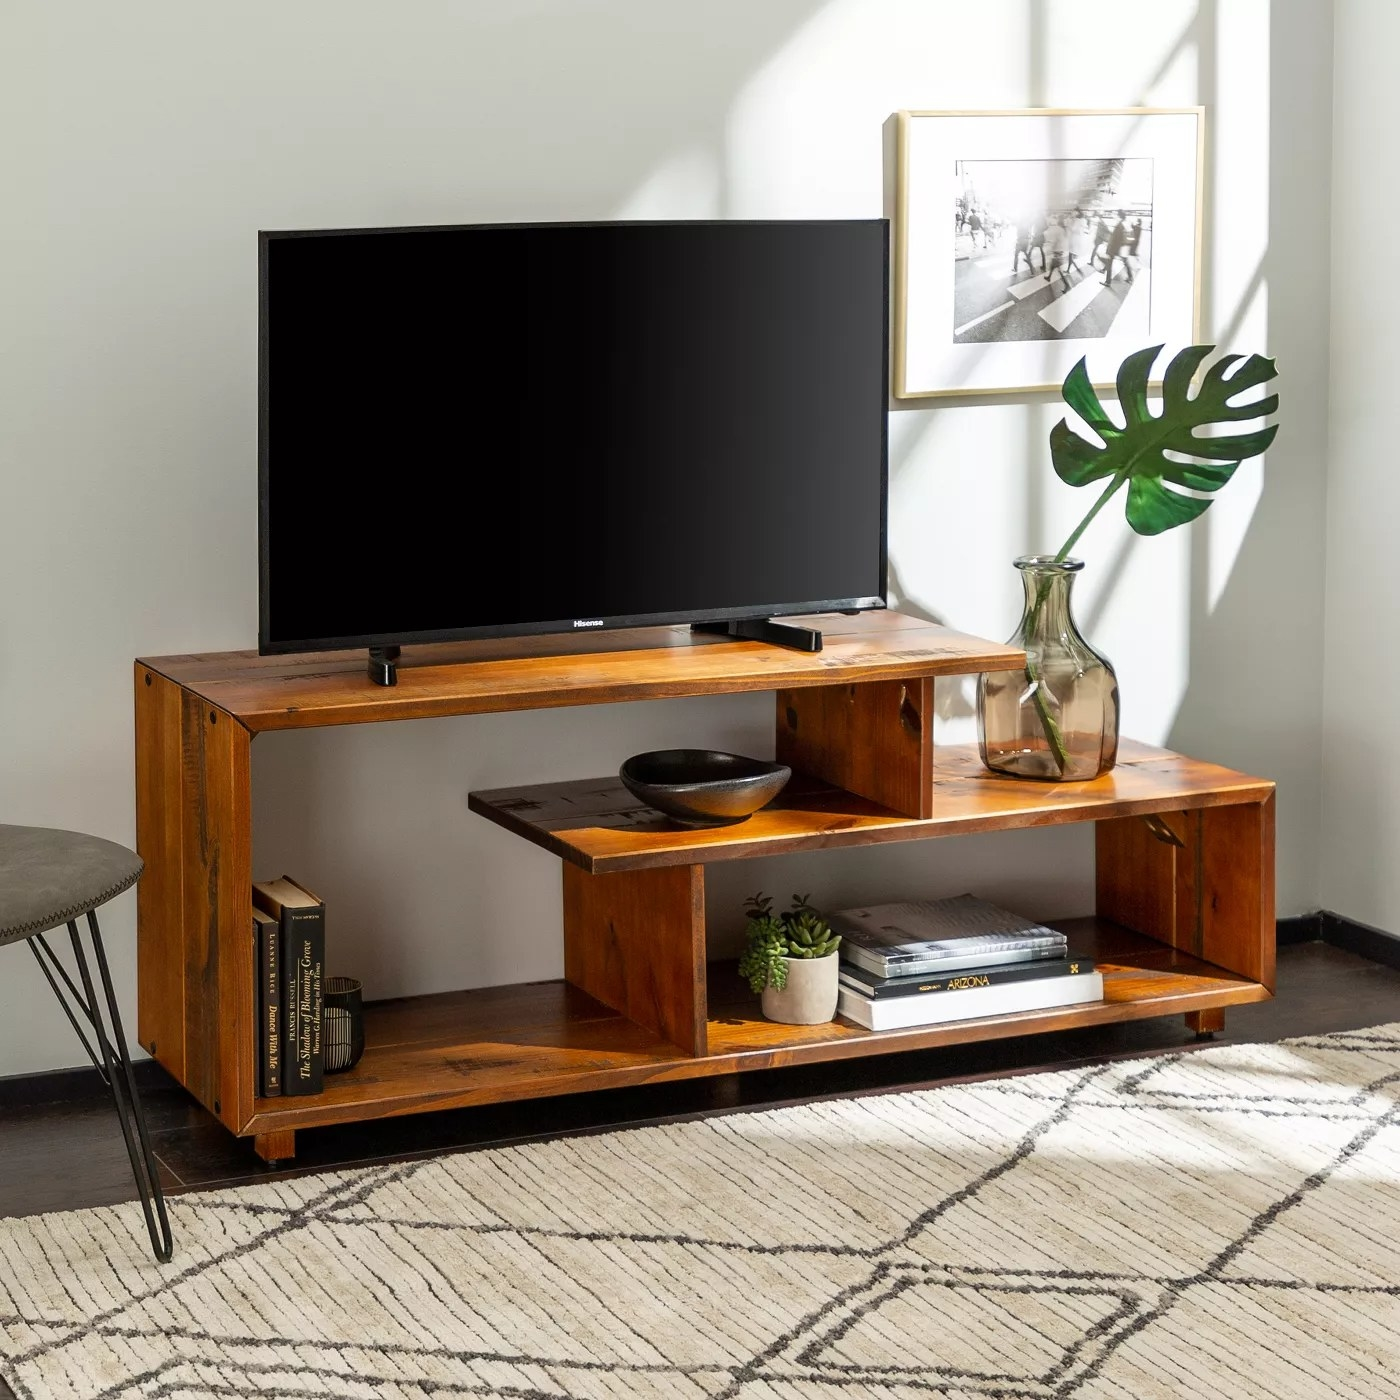 The asymmetrical TV console in amber